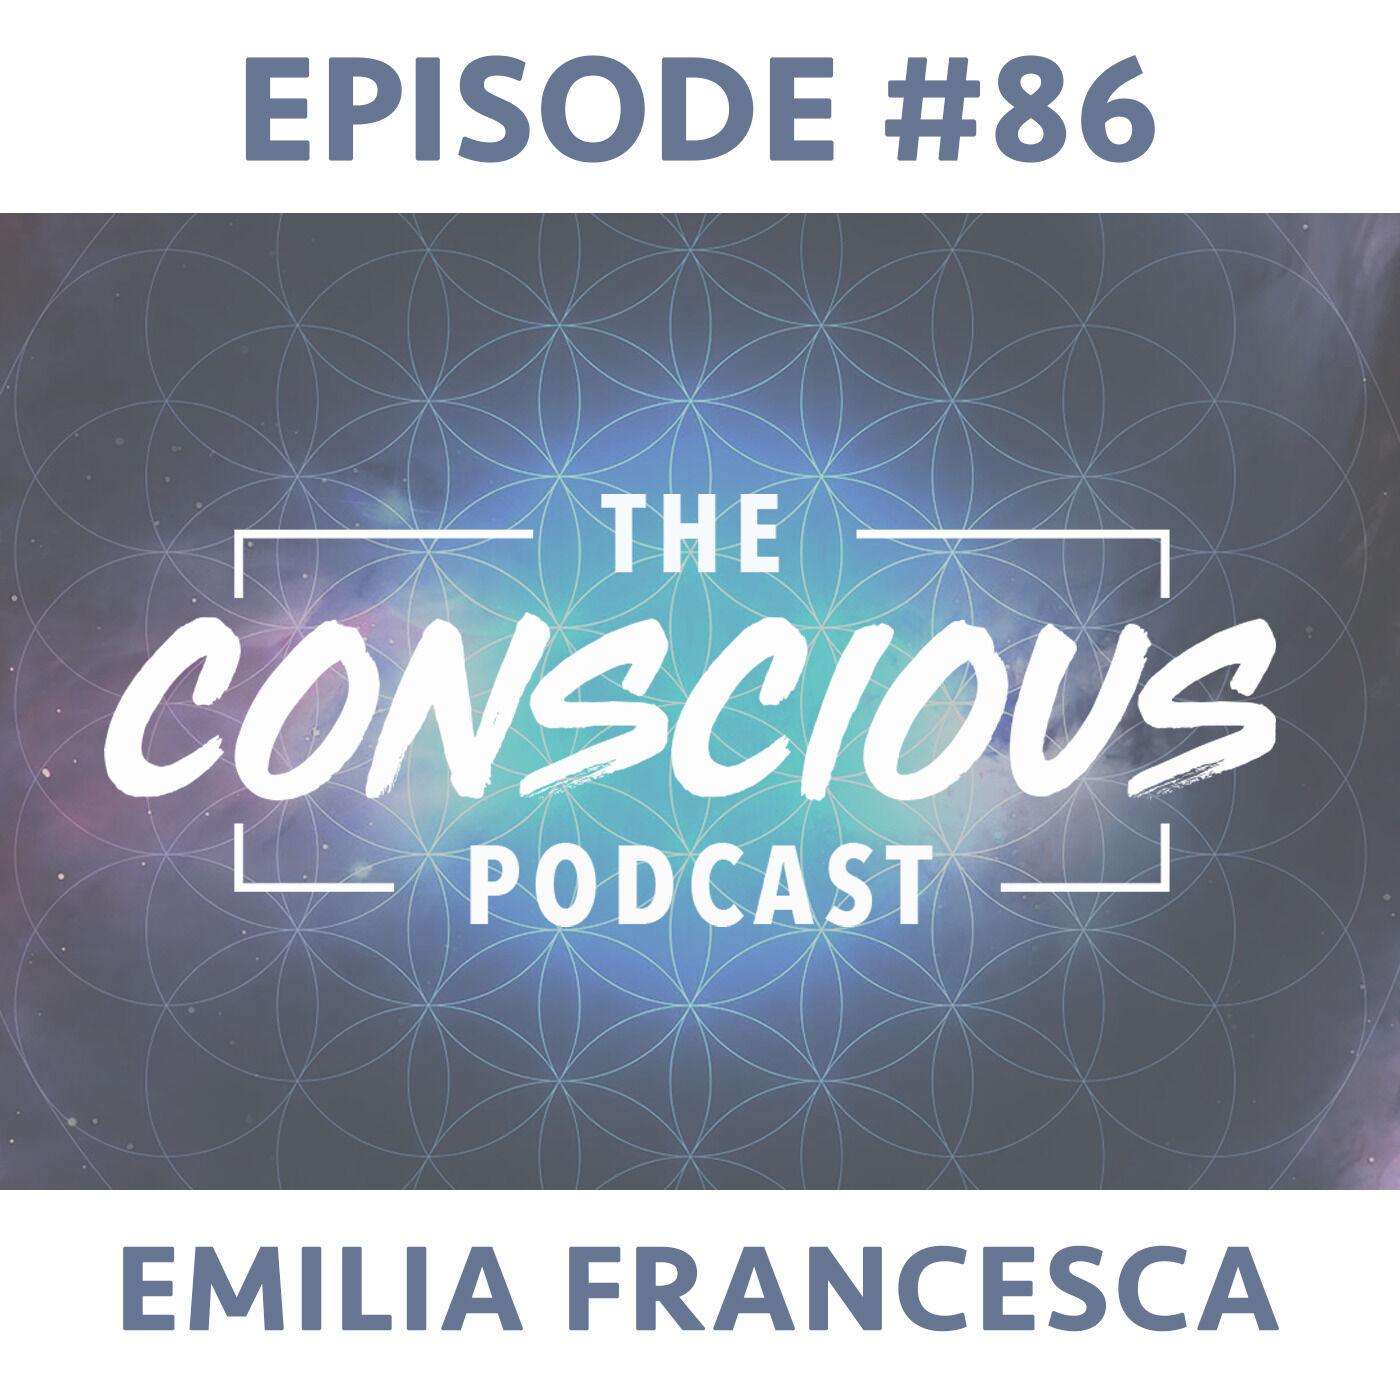 #86 - Emilia Francesca on Authenticity, Feeling Your Emotions & Choosing Happiness.